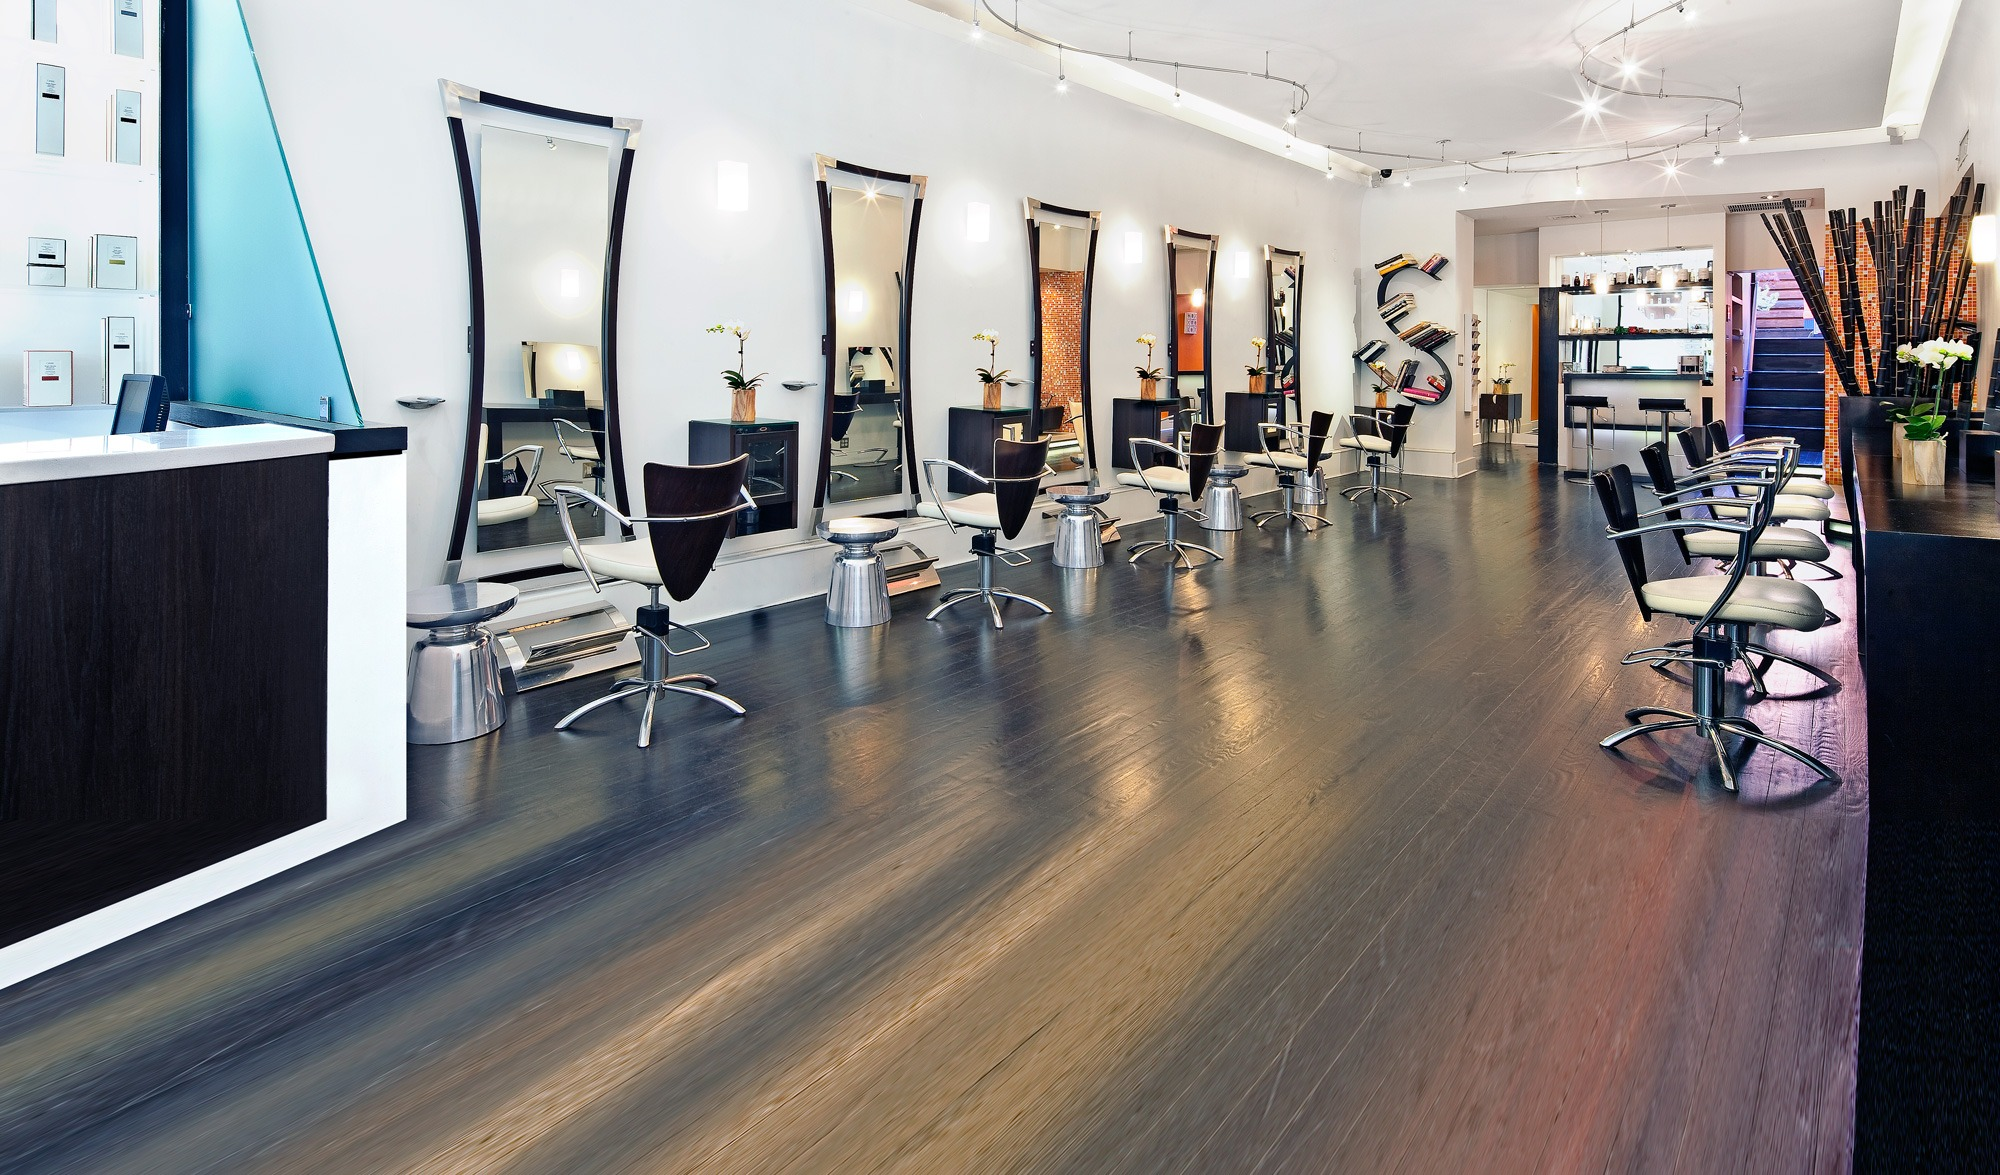 fabio scalia soho new york salon interior fabio scalia